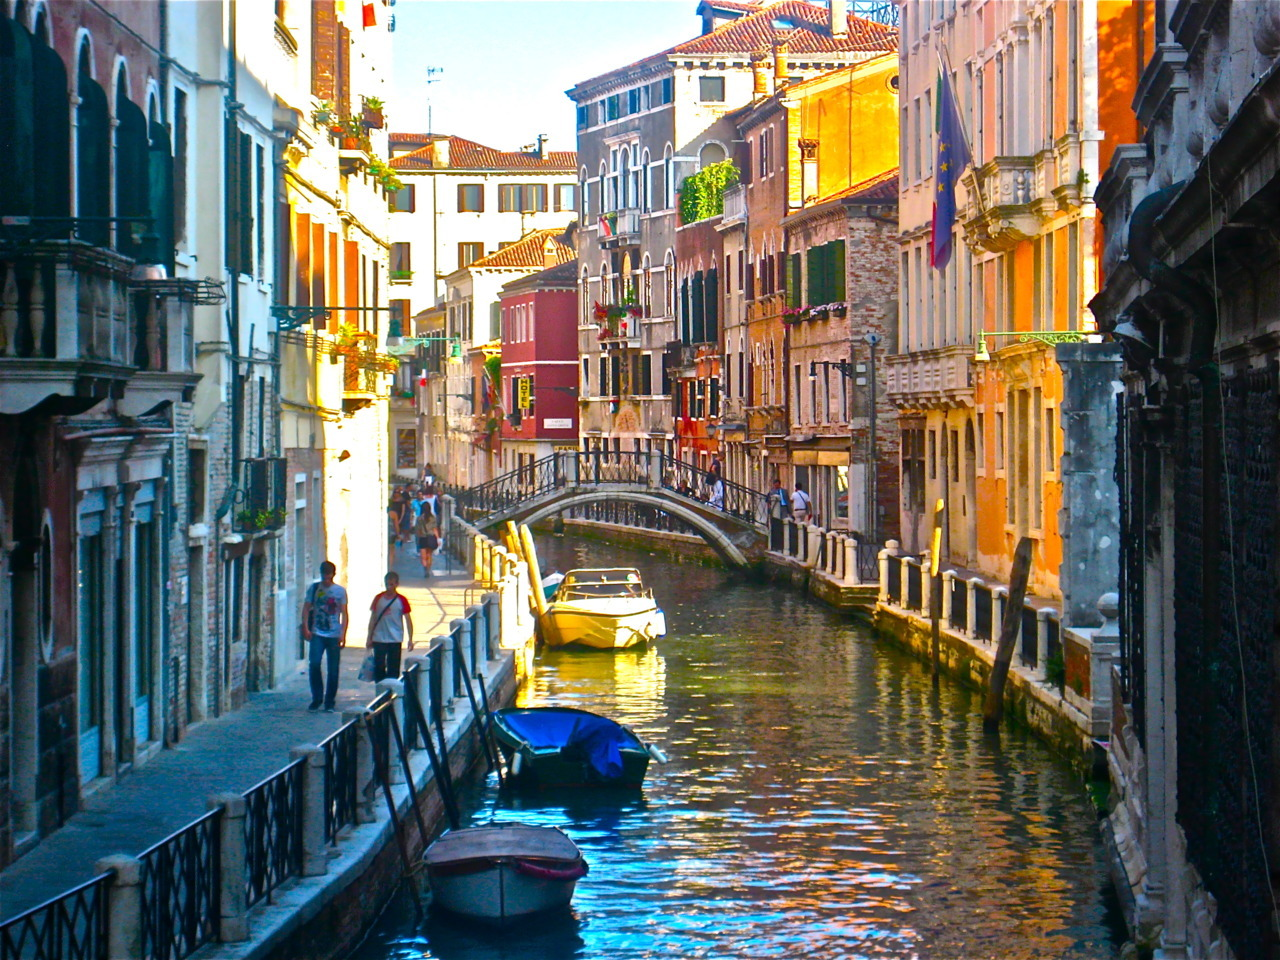 Beauty, beauty, joy, joy! Photo of Venice in all its glory, by me.